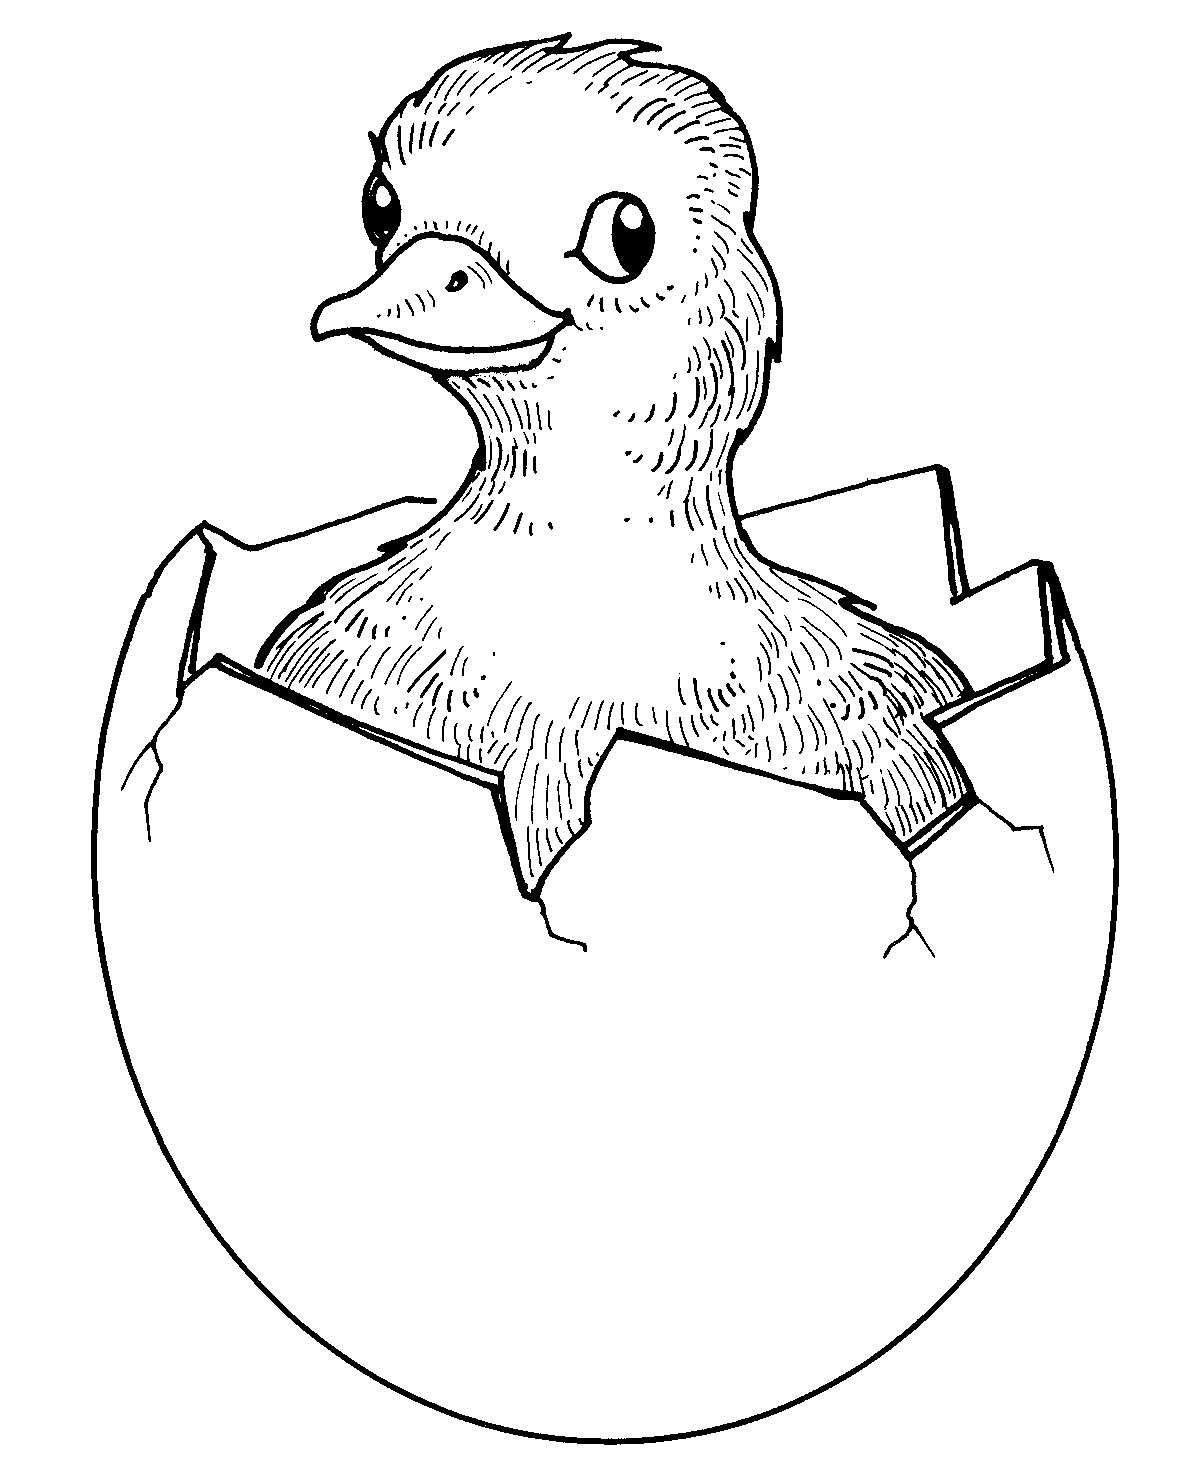 Farm animals clipart black and white duck vector royalty free library Farm Clipart Black And White | Free download best Farm Clipart Black ... vector royalty free library